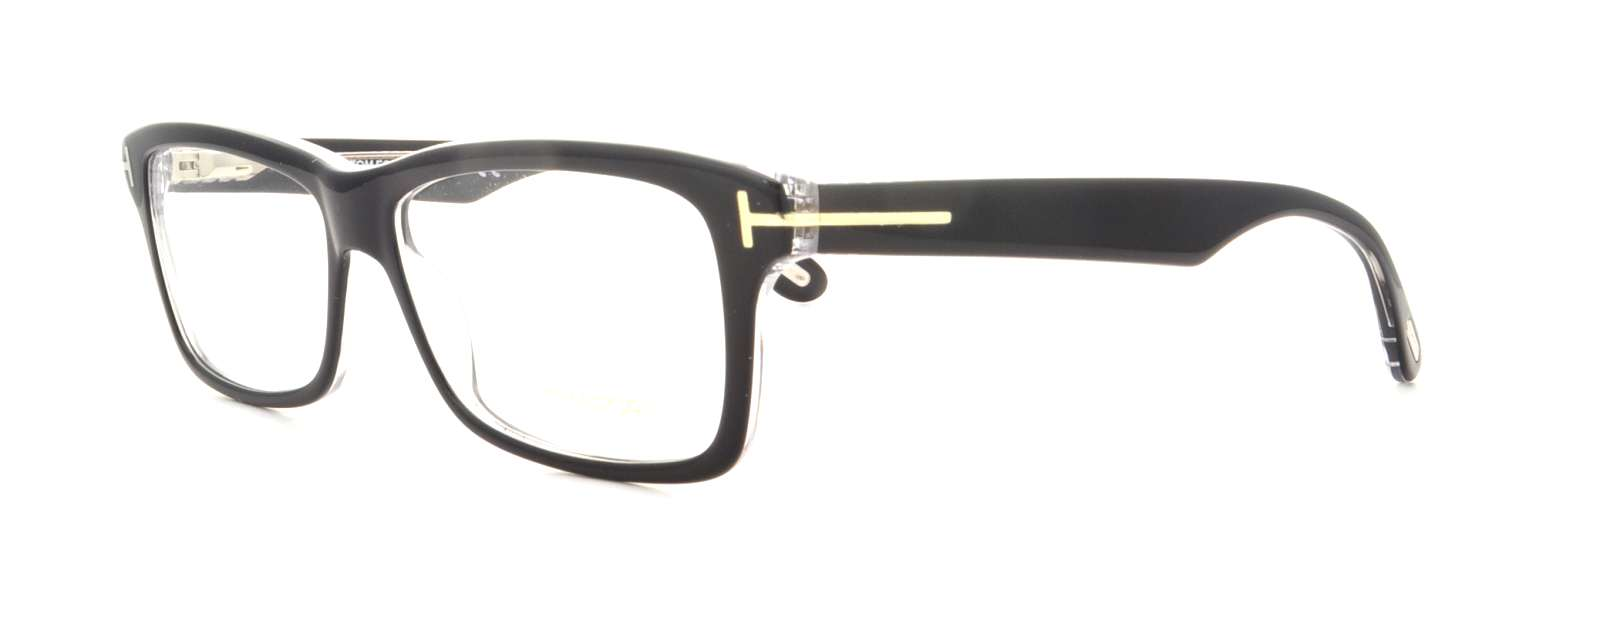 1ccbb6516f Designer Frames Outlet. Tom Ford FT5146